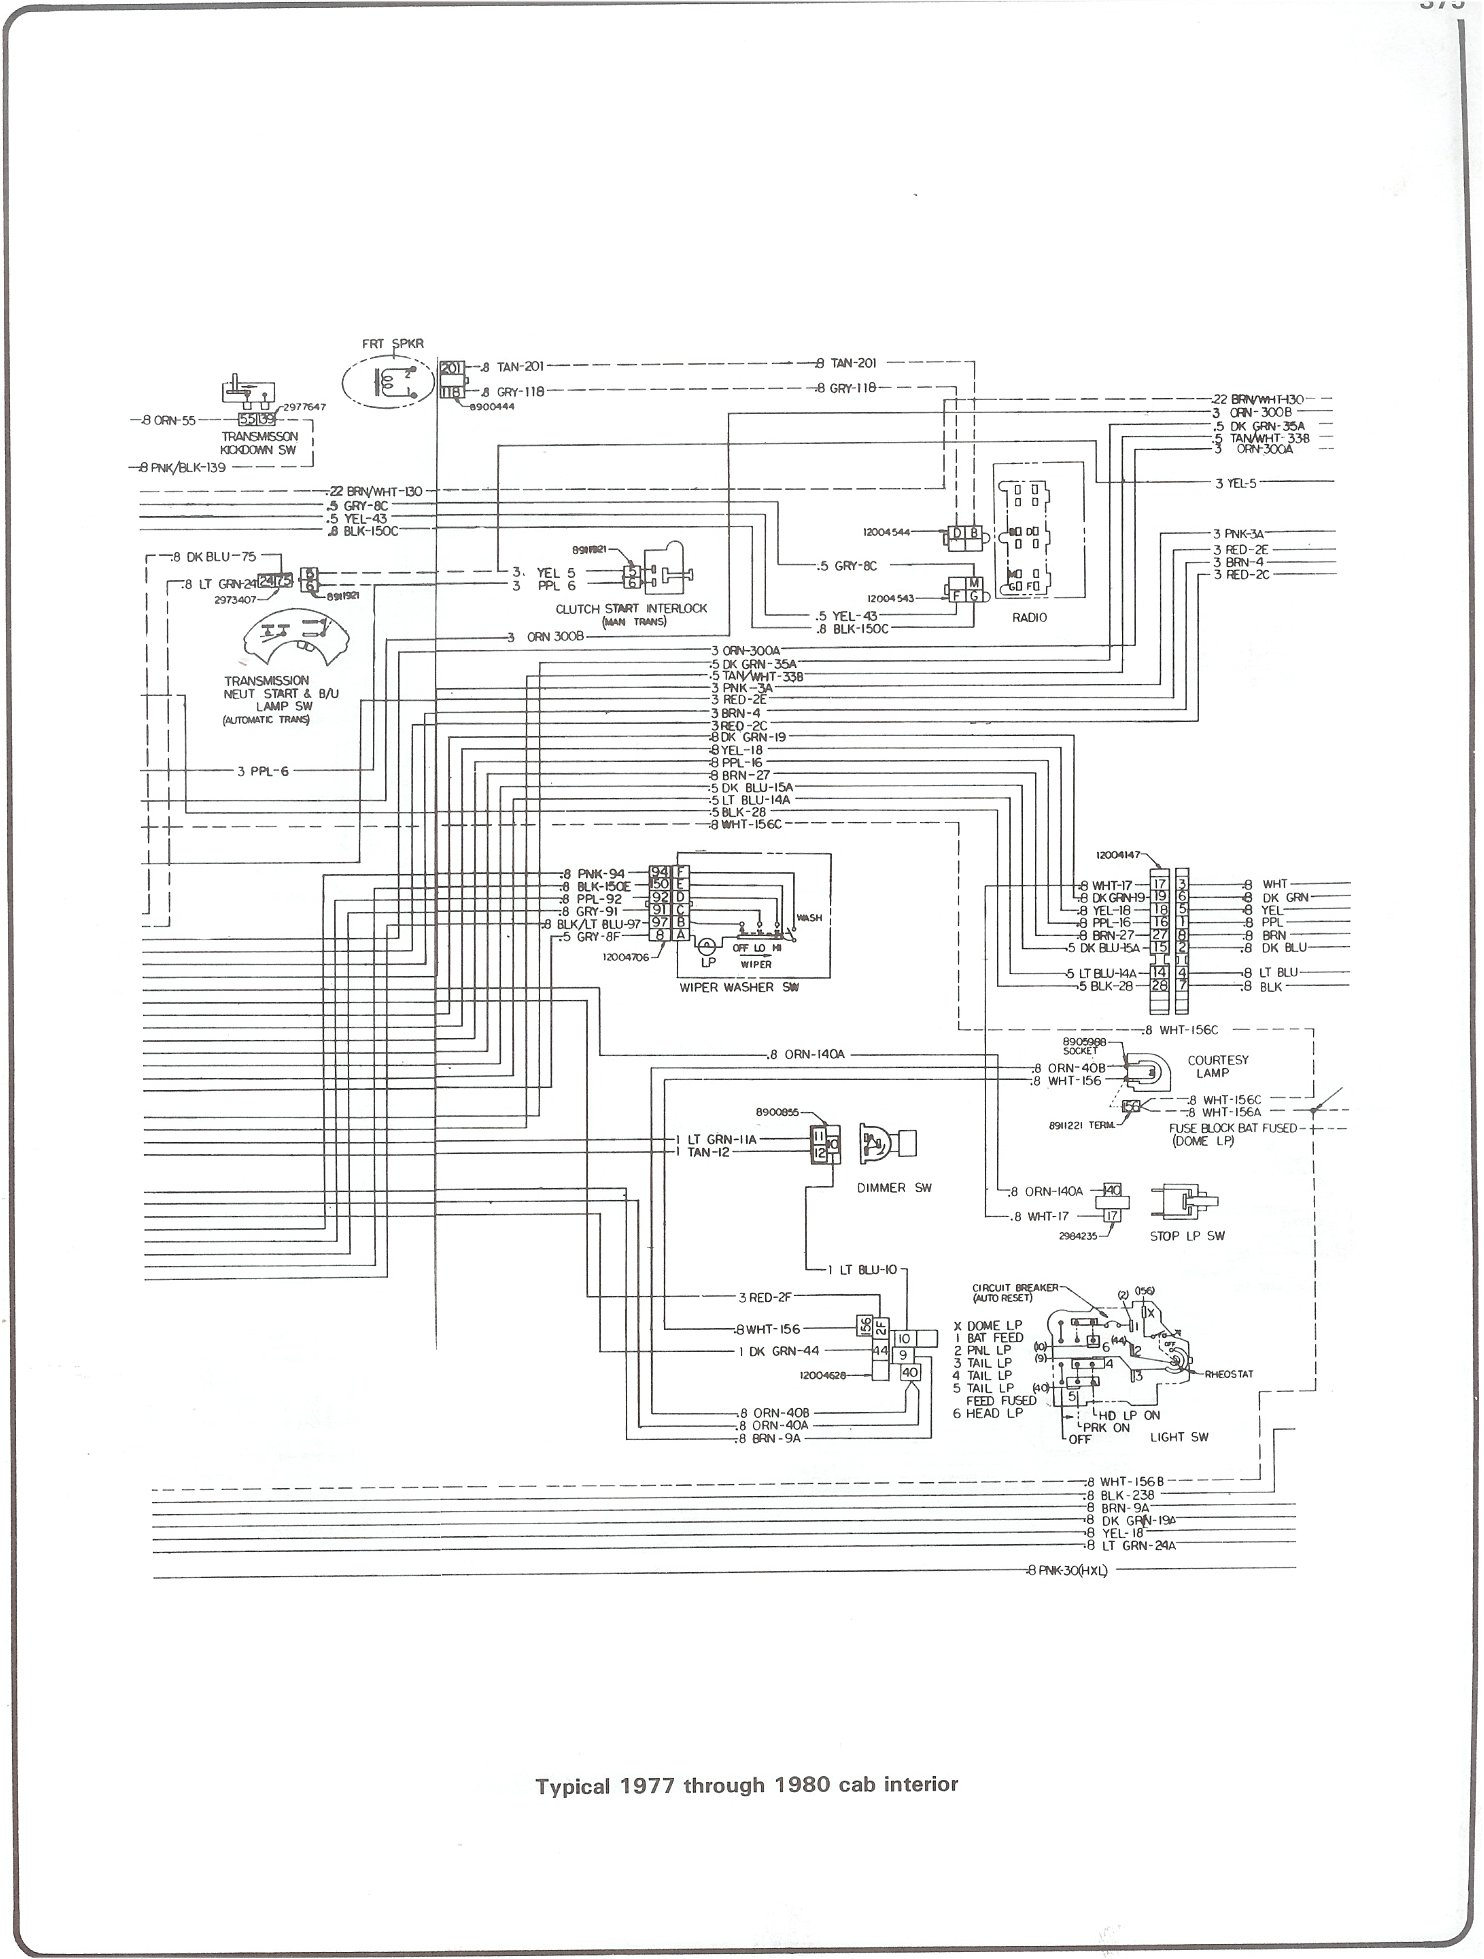 Wiring Diagram 83 Chevy Truck | Wiring Library - Trailer Wiring Harness Diagram 6 Way